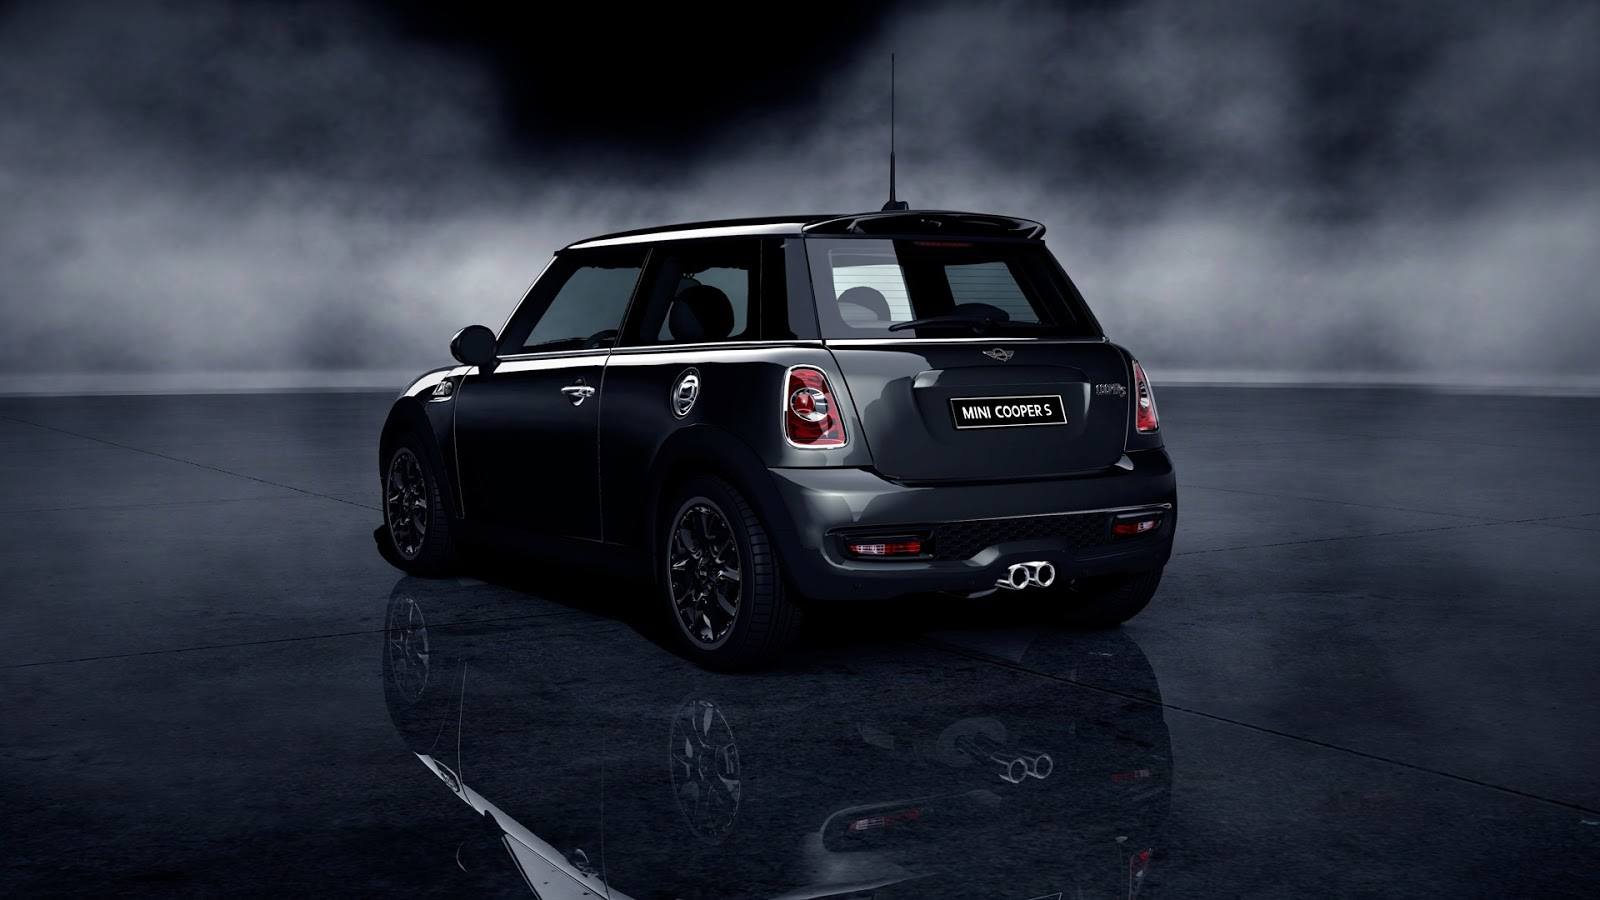 Mini Cooper S wallpaperMini cooper pictures 1600x900